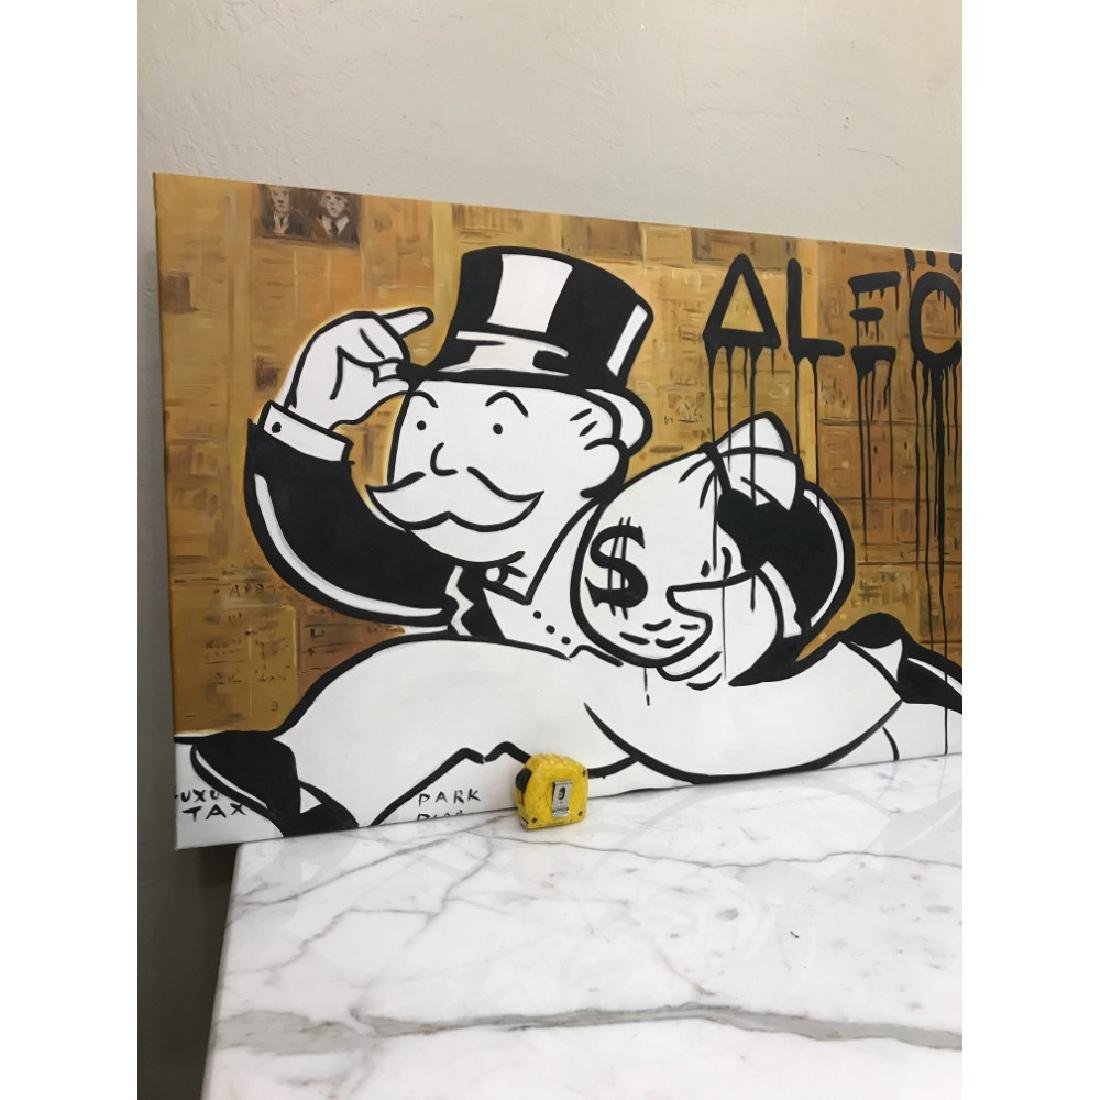 Oil on Canvas of Monopoly Man w/ Bag of Money - 8